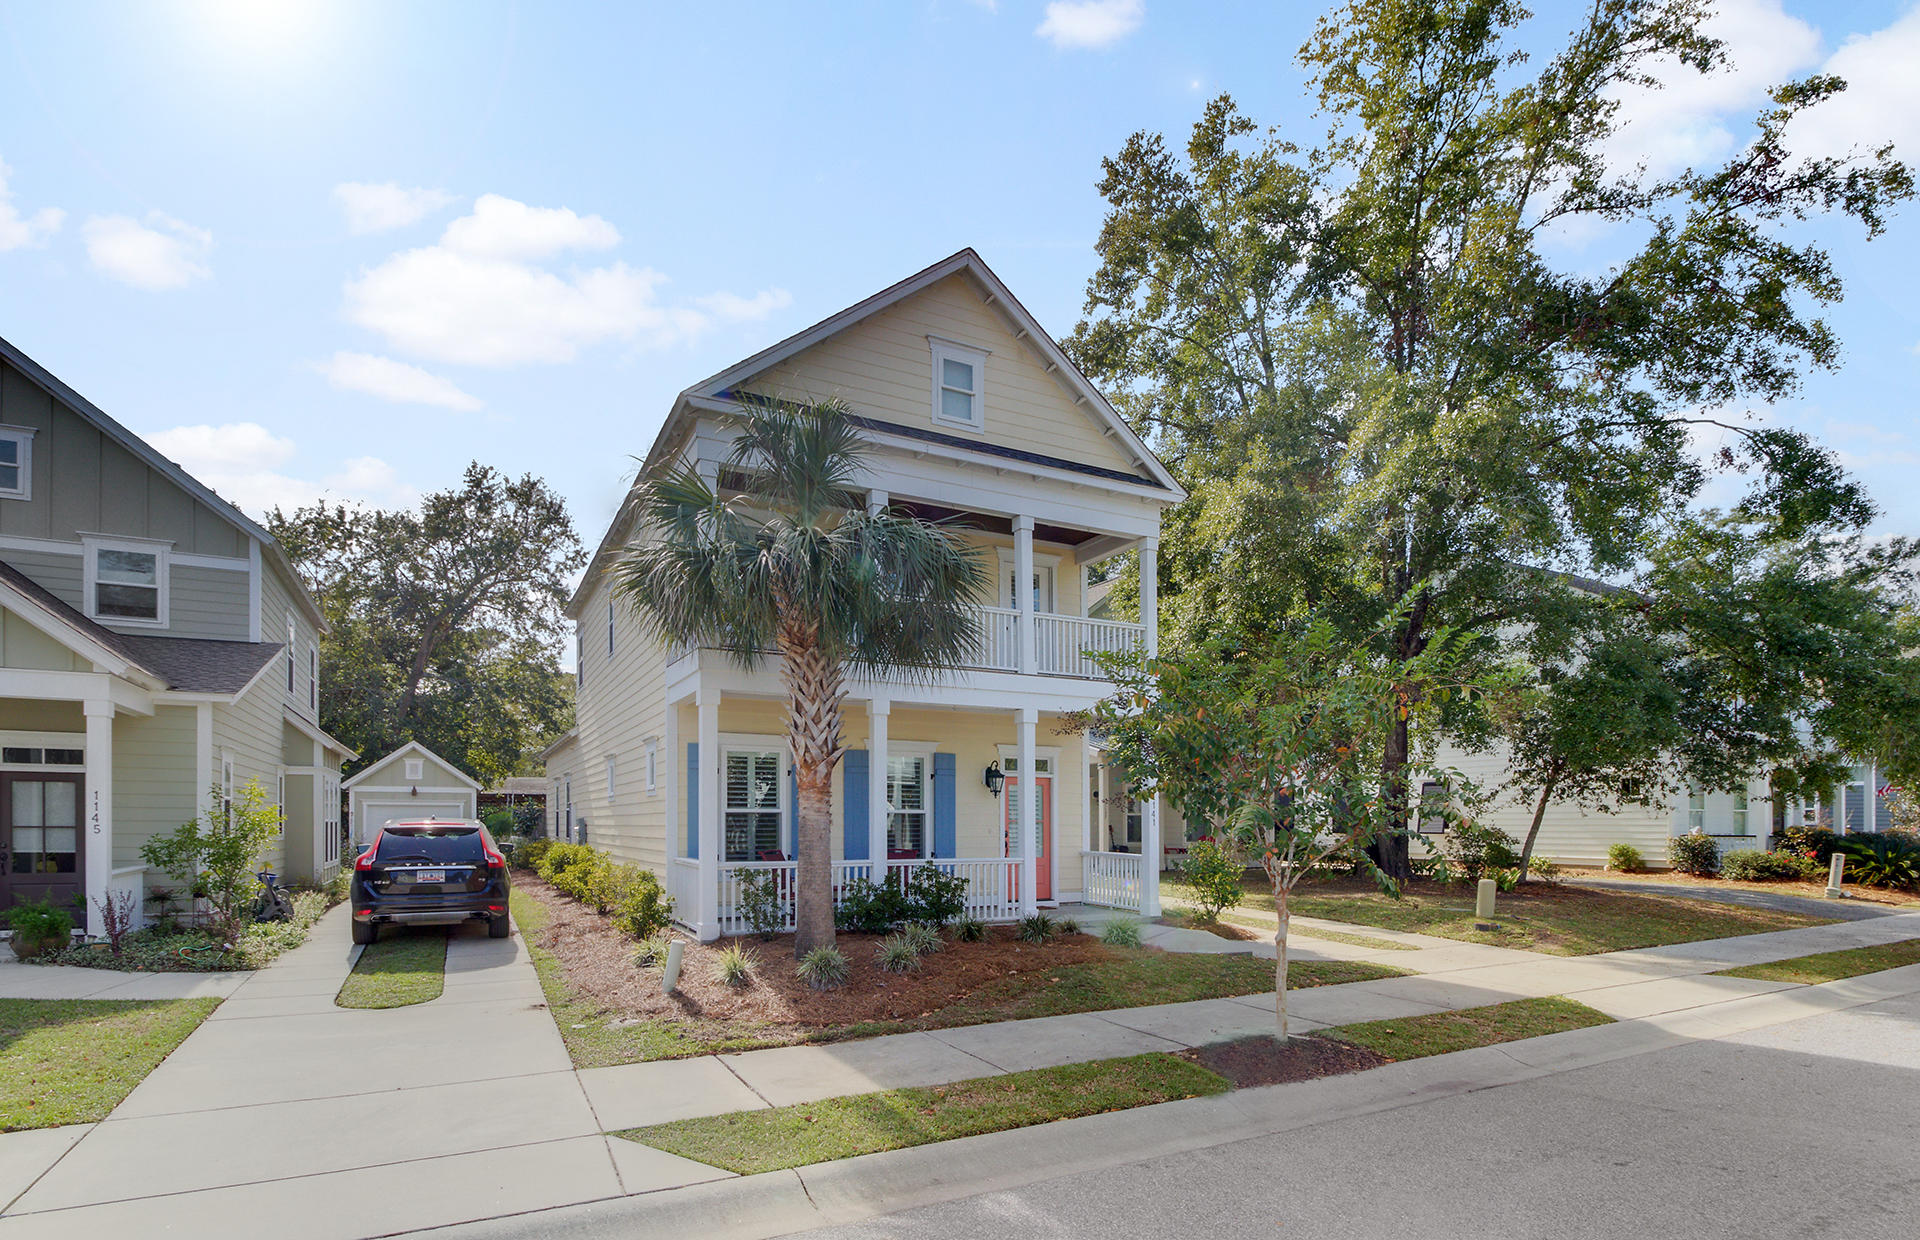 Wexford Park Homes For Sale - 1141 Wexford, Mount Pleasant, SC - 16